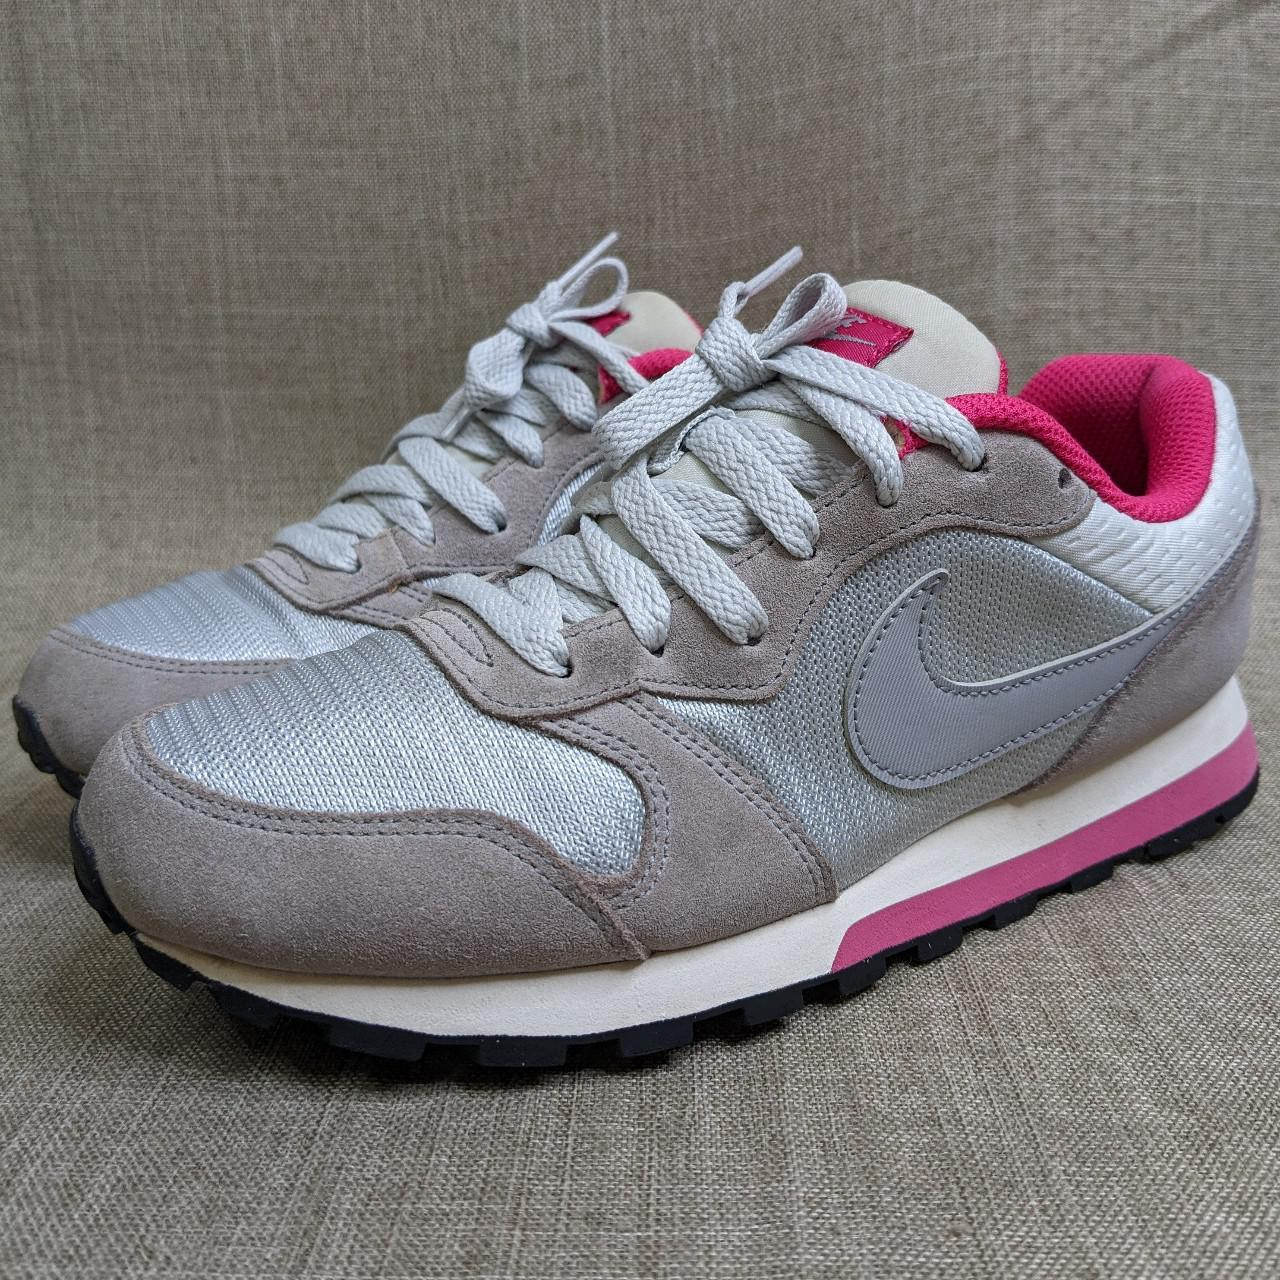 Product Image 1 - Nike retro dad sneakers in